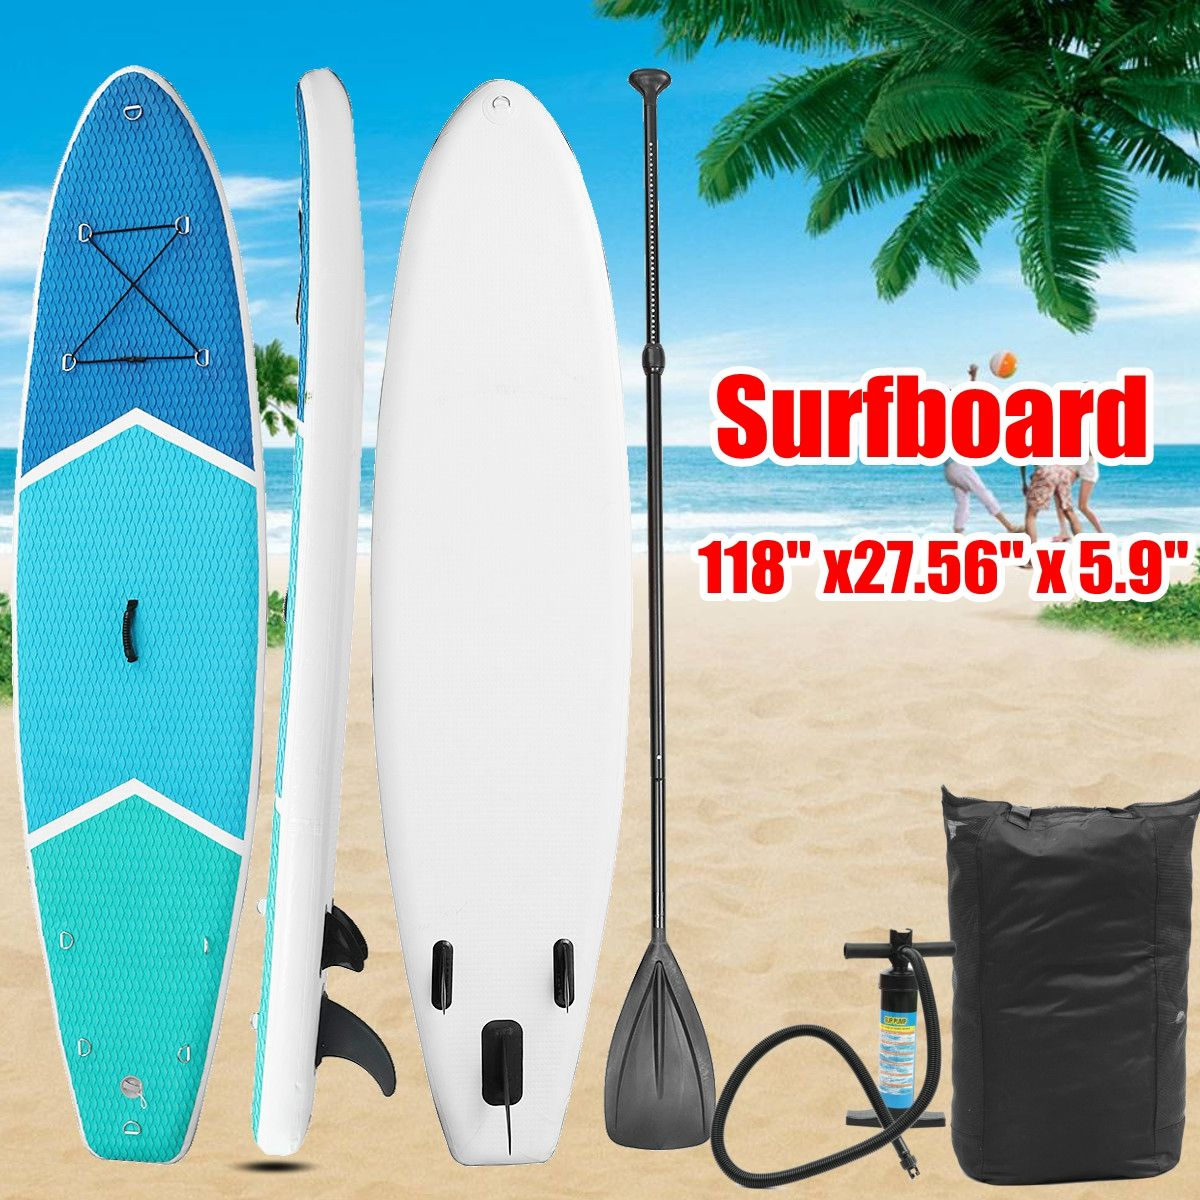 300*70*15cm inflatable surfboard Stand Up SUP Board Brett Surf aufblasbar paddle boat mit Repair material+Paddel